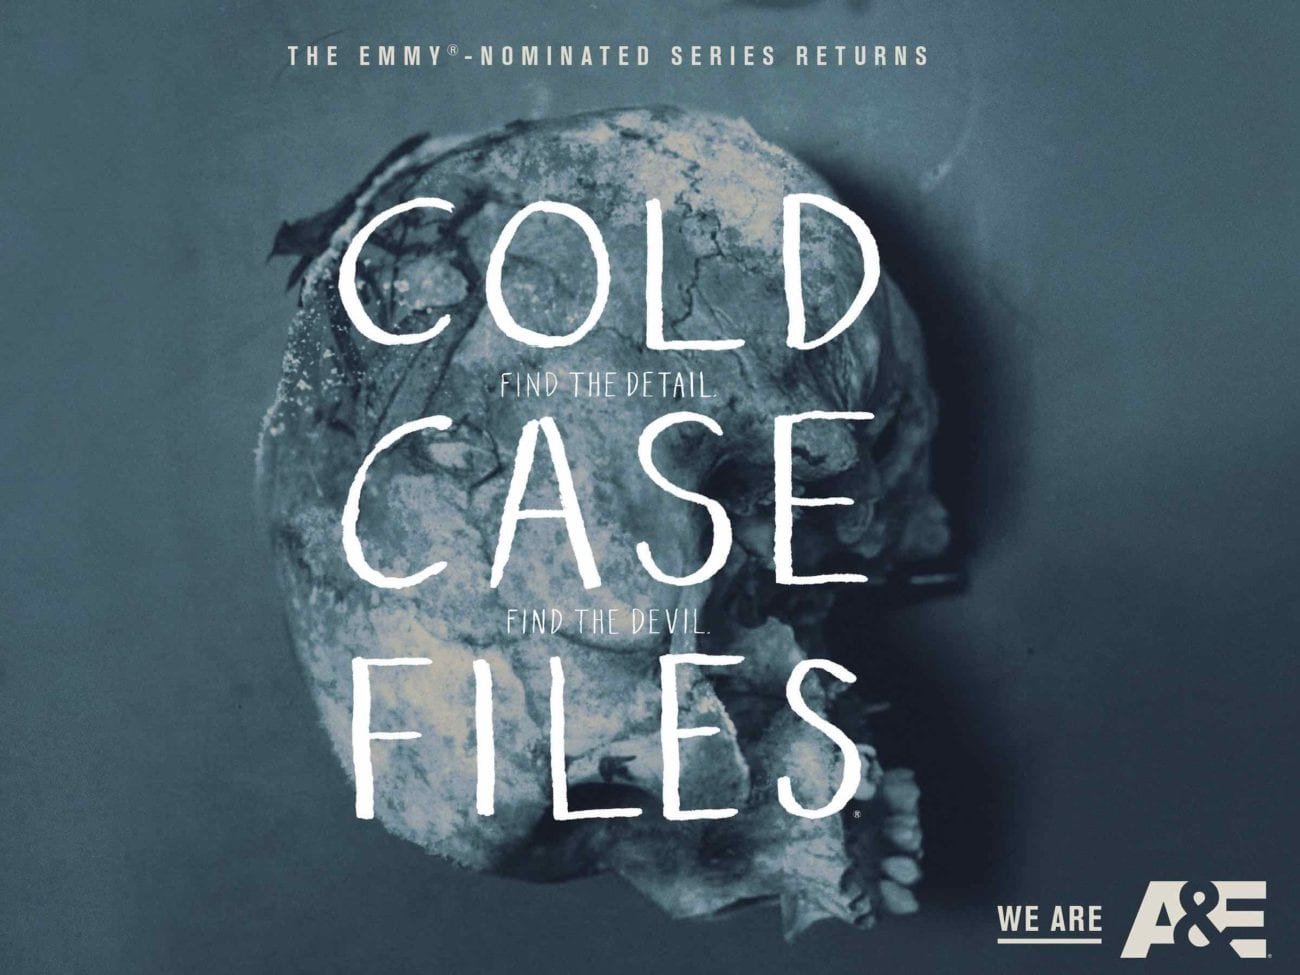 We've rounded up some of the very best episodes of 'Cold Case Files', for those of you who are looking to curl up with a good mystery.